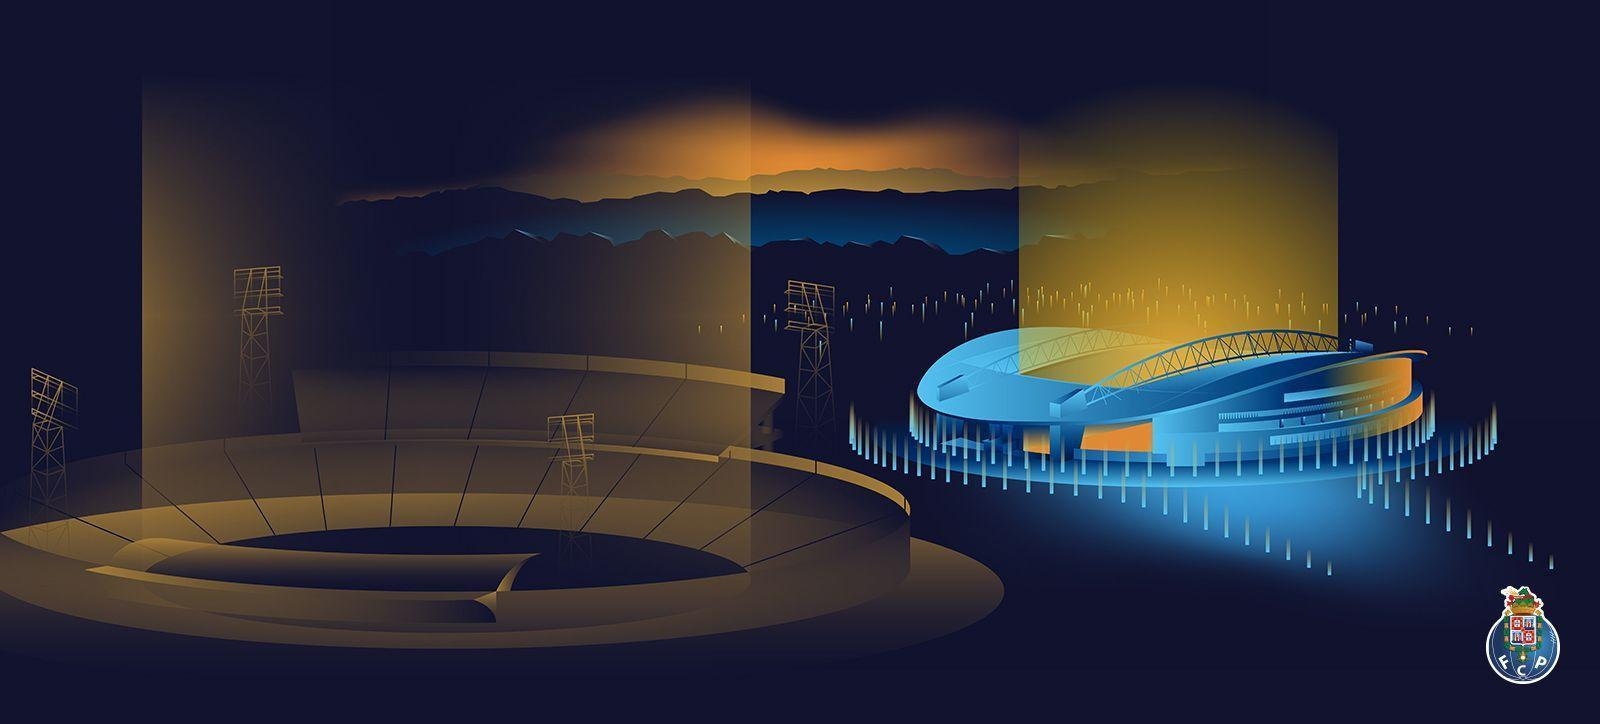 FC Porto - Wallpapers